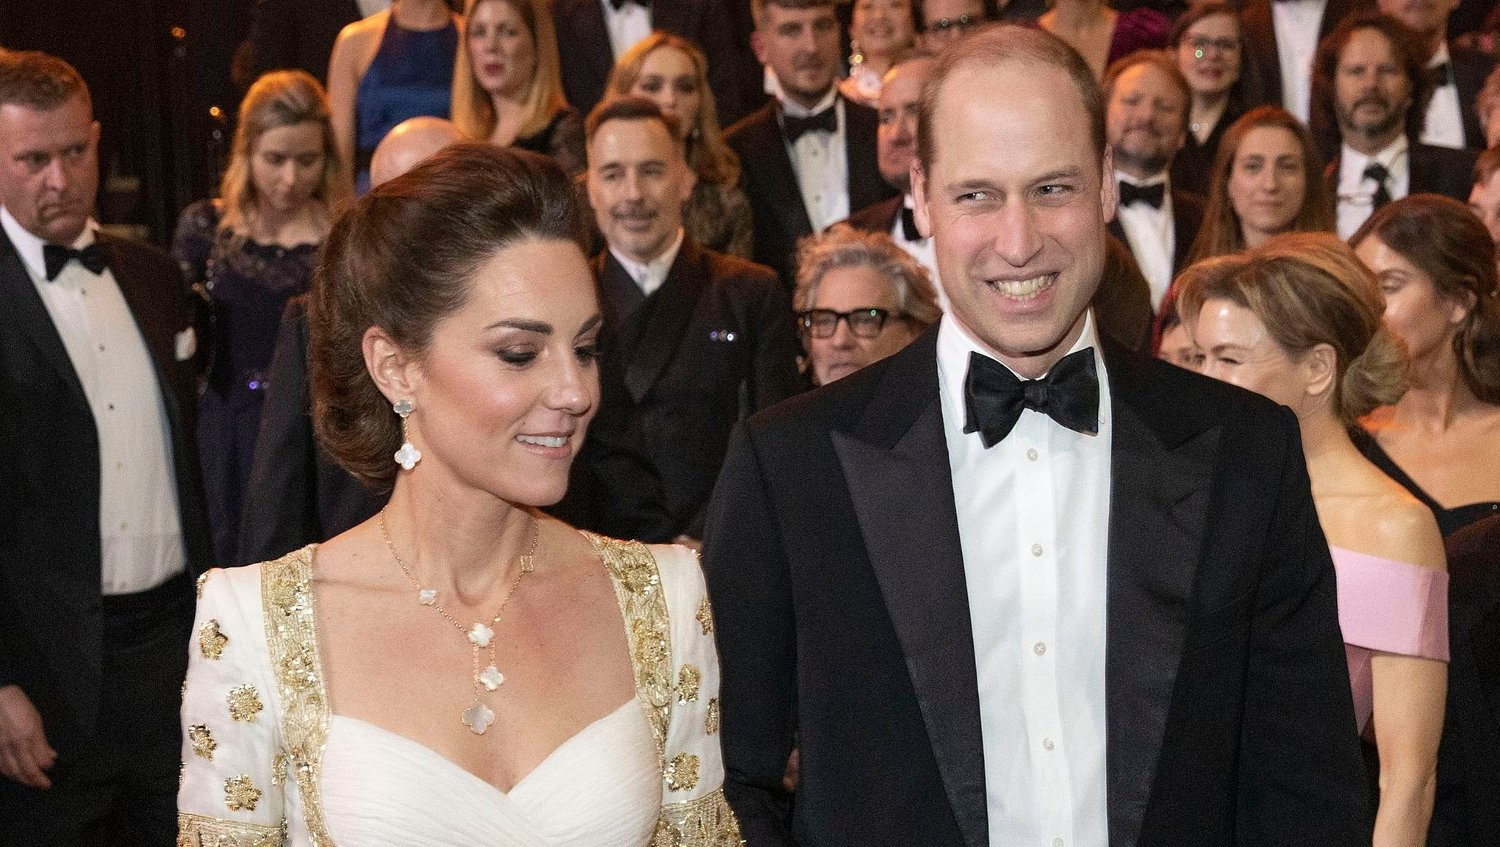 The Duke and Duchess of Cambridge attend the Baftas The Duke and Duchess of Cambridge attend the EE British Academy Film Awards at Royal Albert Hall in London.